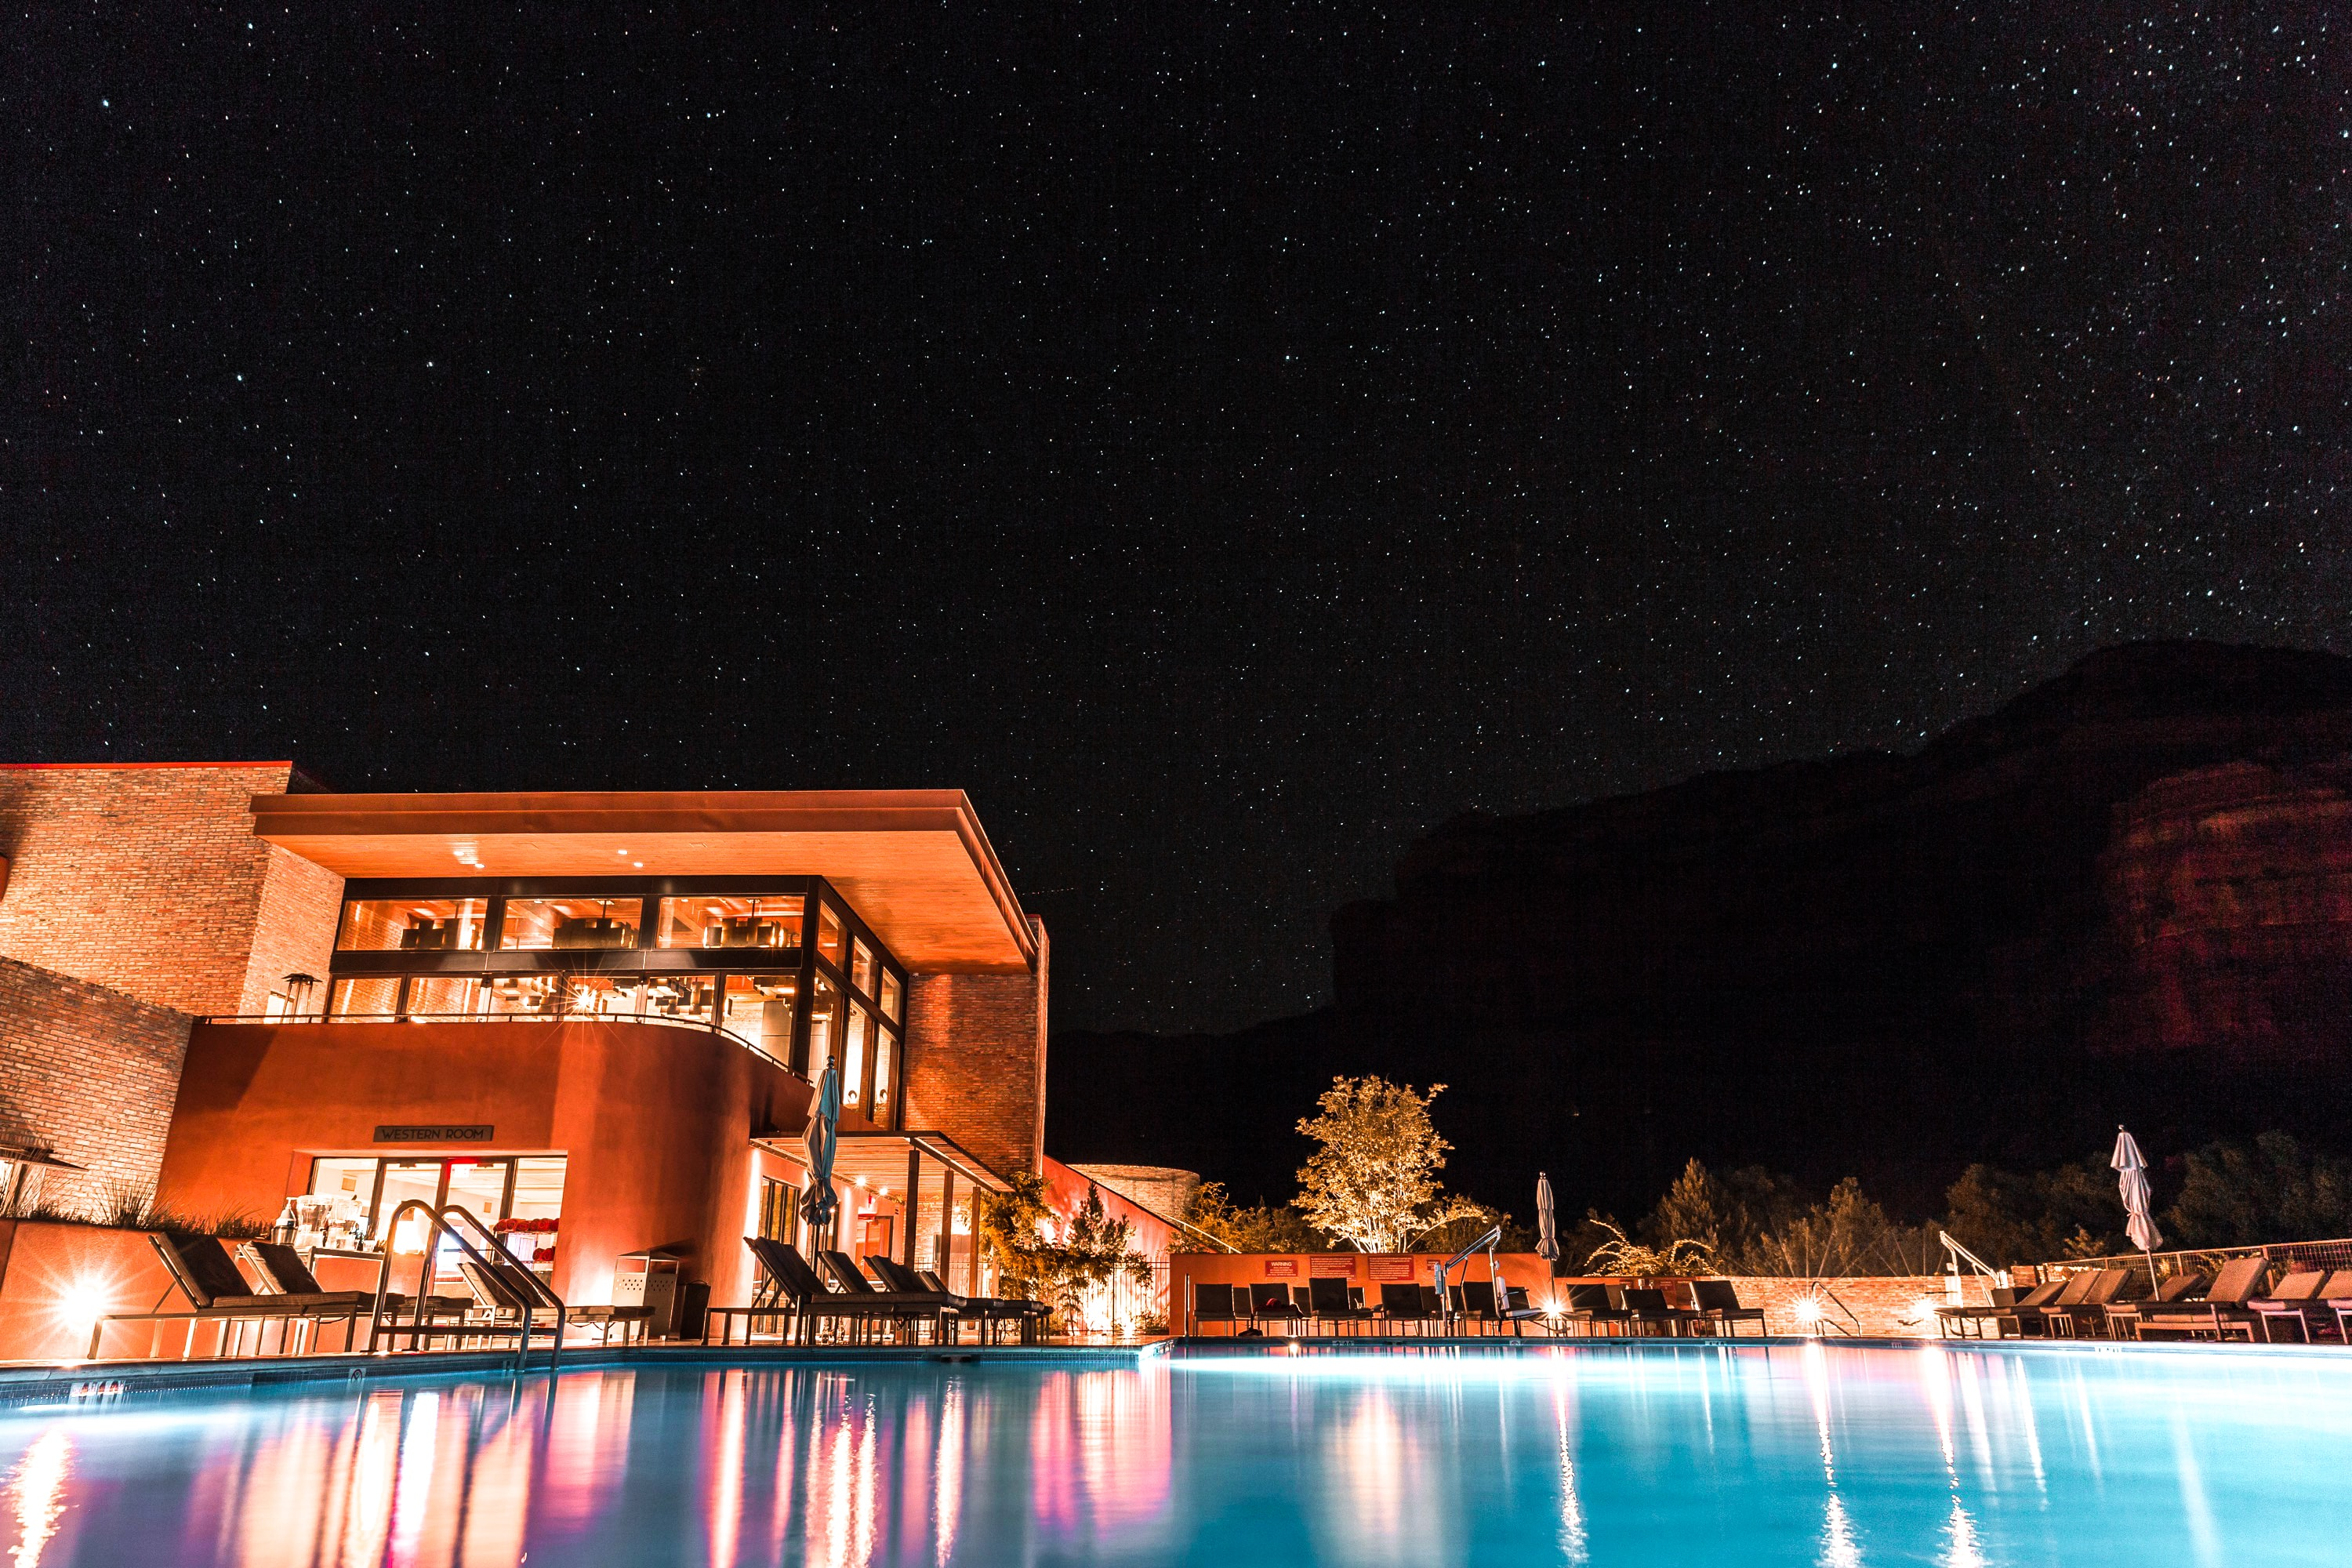 brown and white concrete building beside pool during nighttime